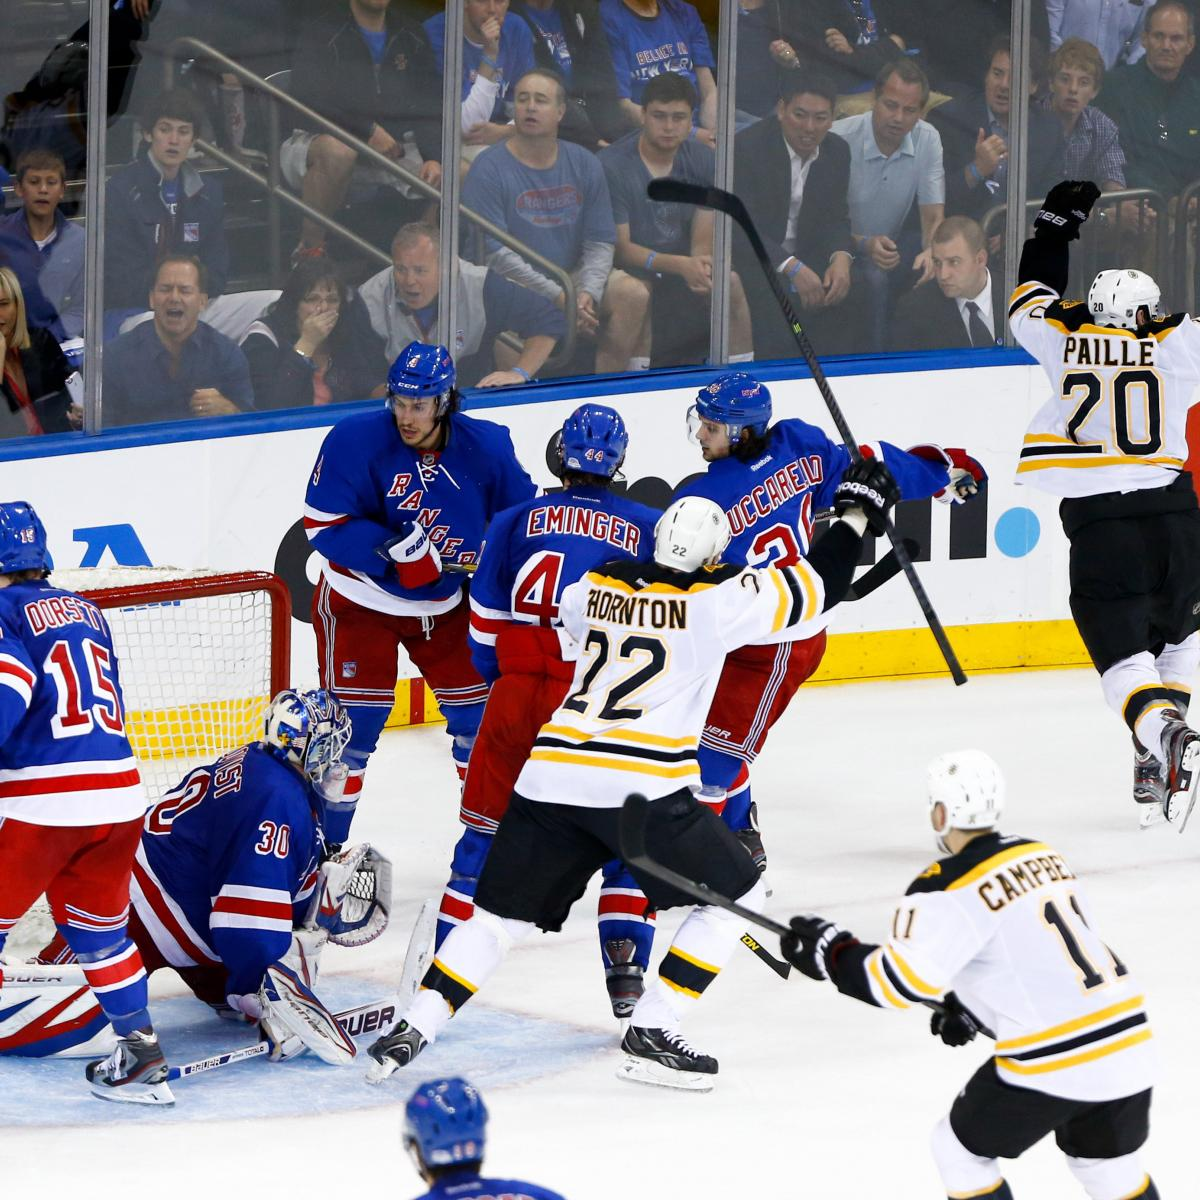 Bruins vs. Rangers: How Will New York Respond to Playoff ...Bruins Bleacher Report